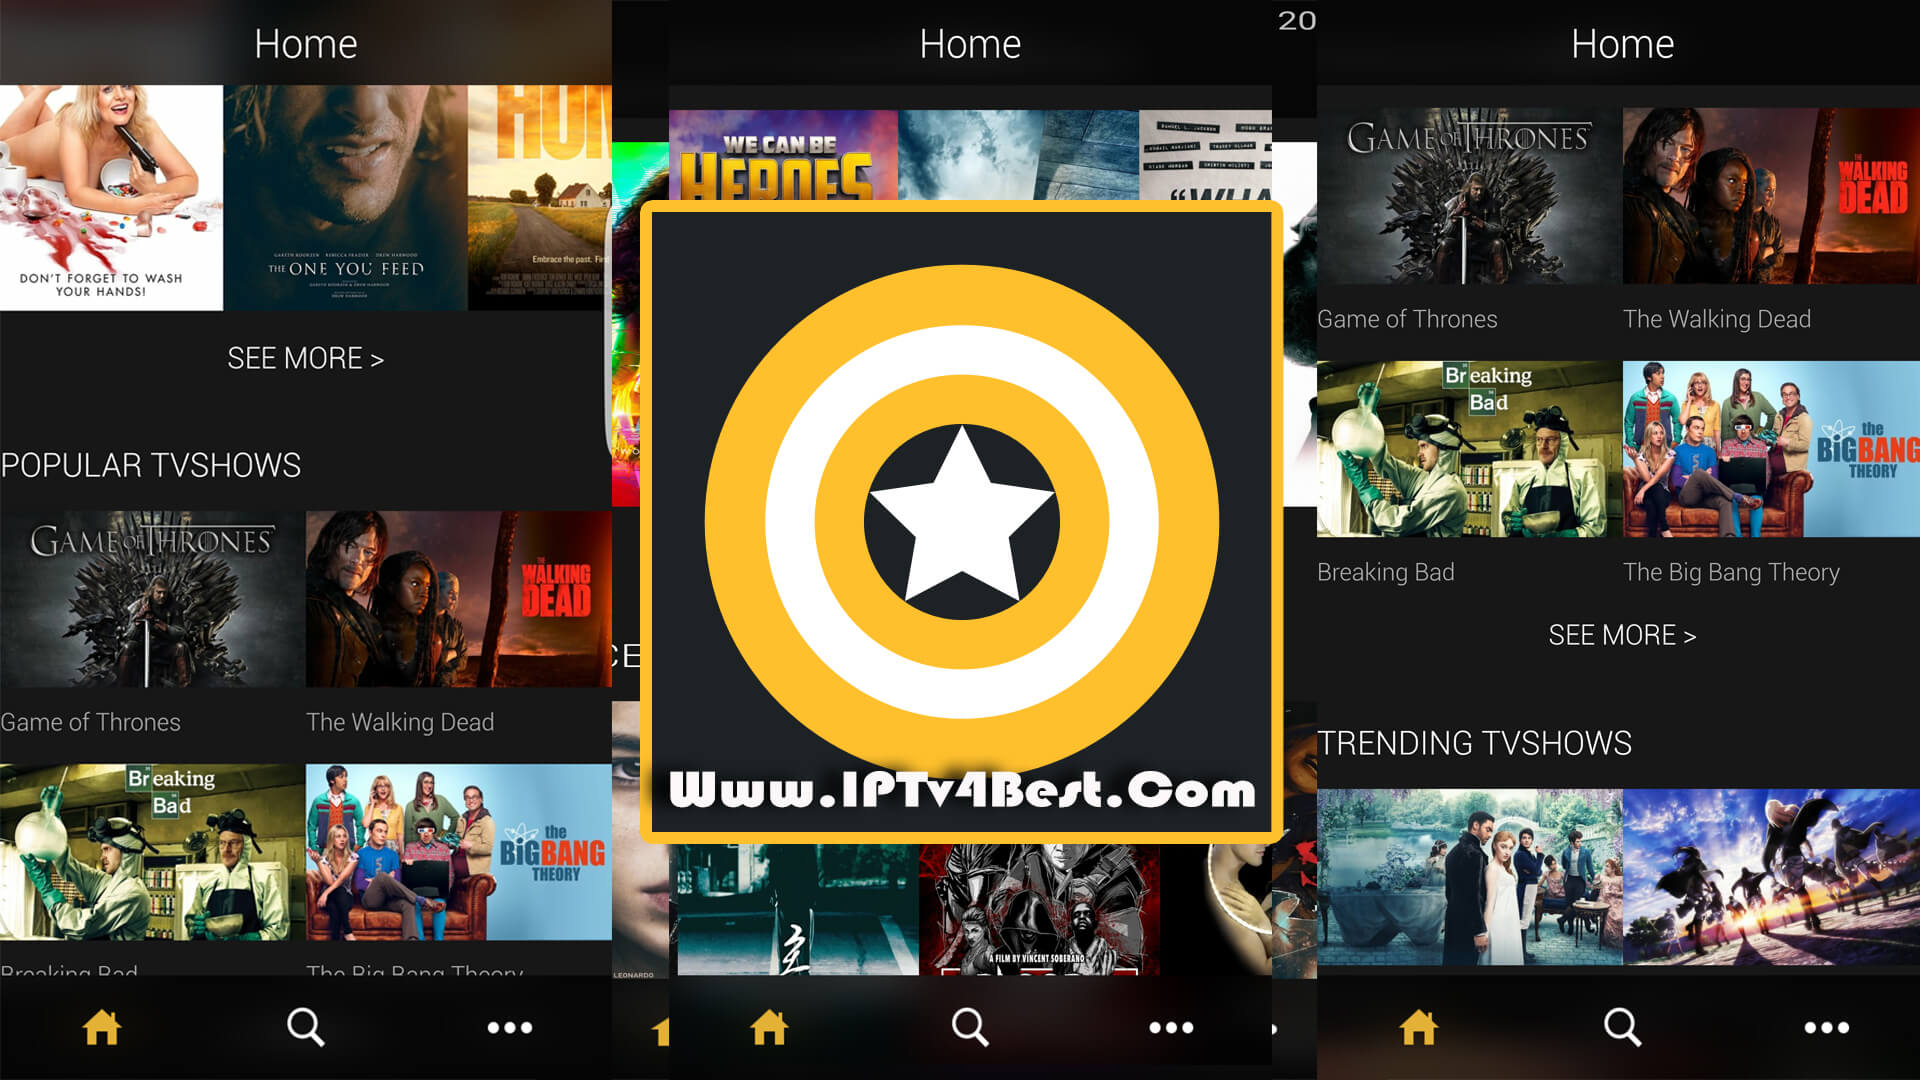 ZiniTevi Official - App For iOS & Android APK By IPTV4BEST.COM